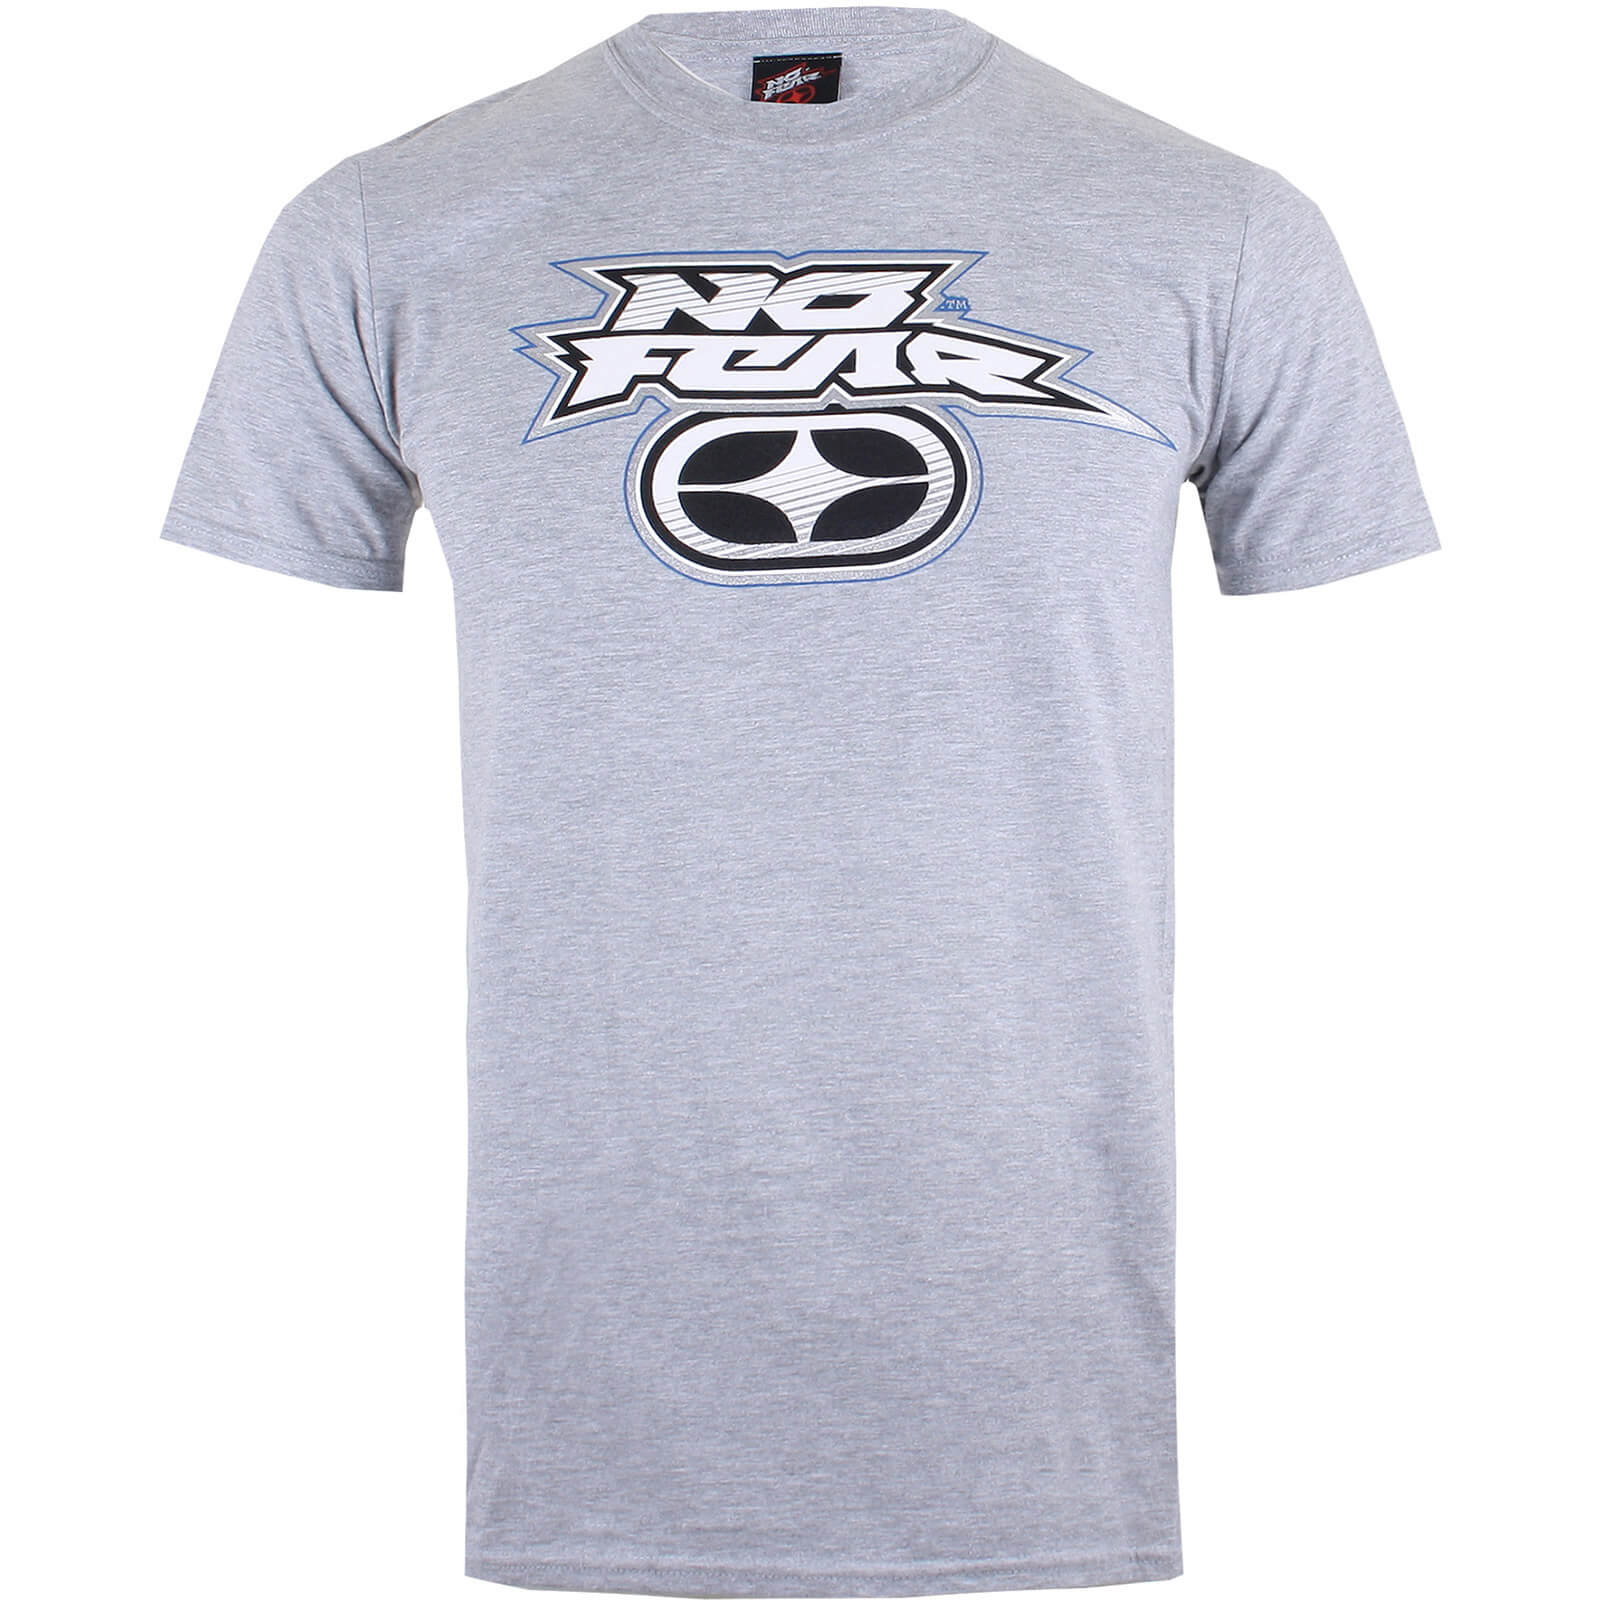 8f6dcde91565 No Fear Men's Reflective Logo T-Shirt - Sports Grey Clothing | Zavvi